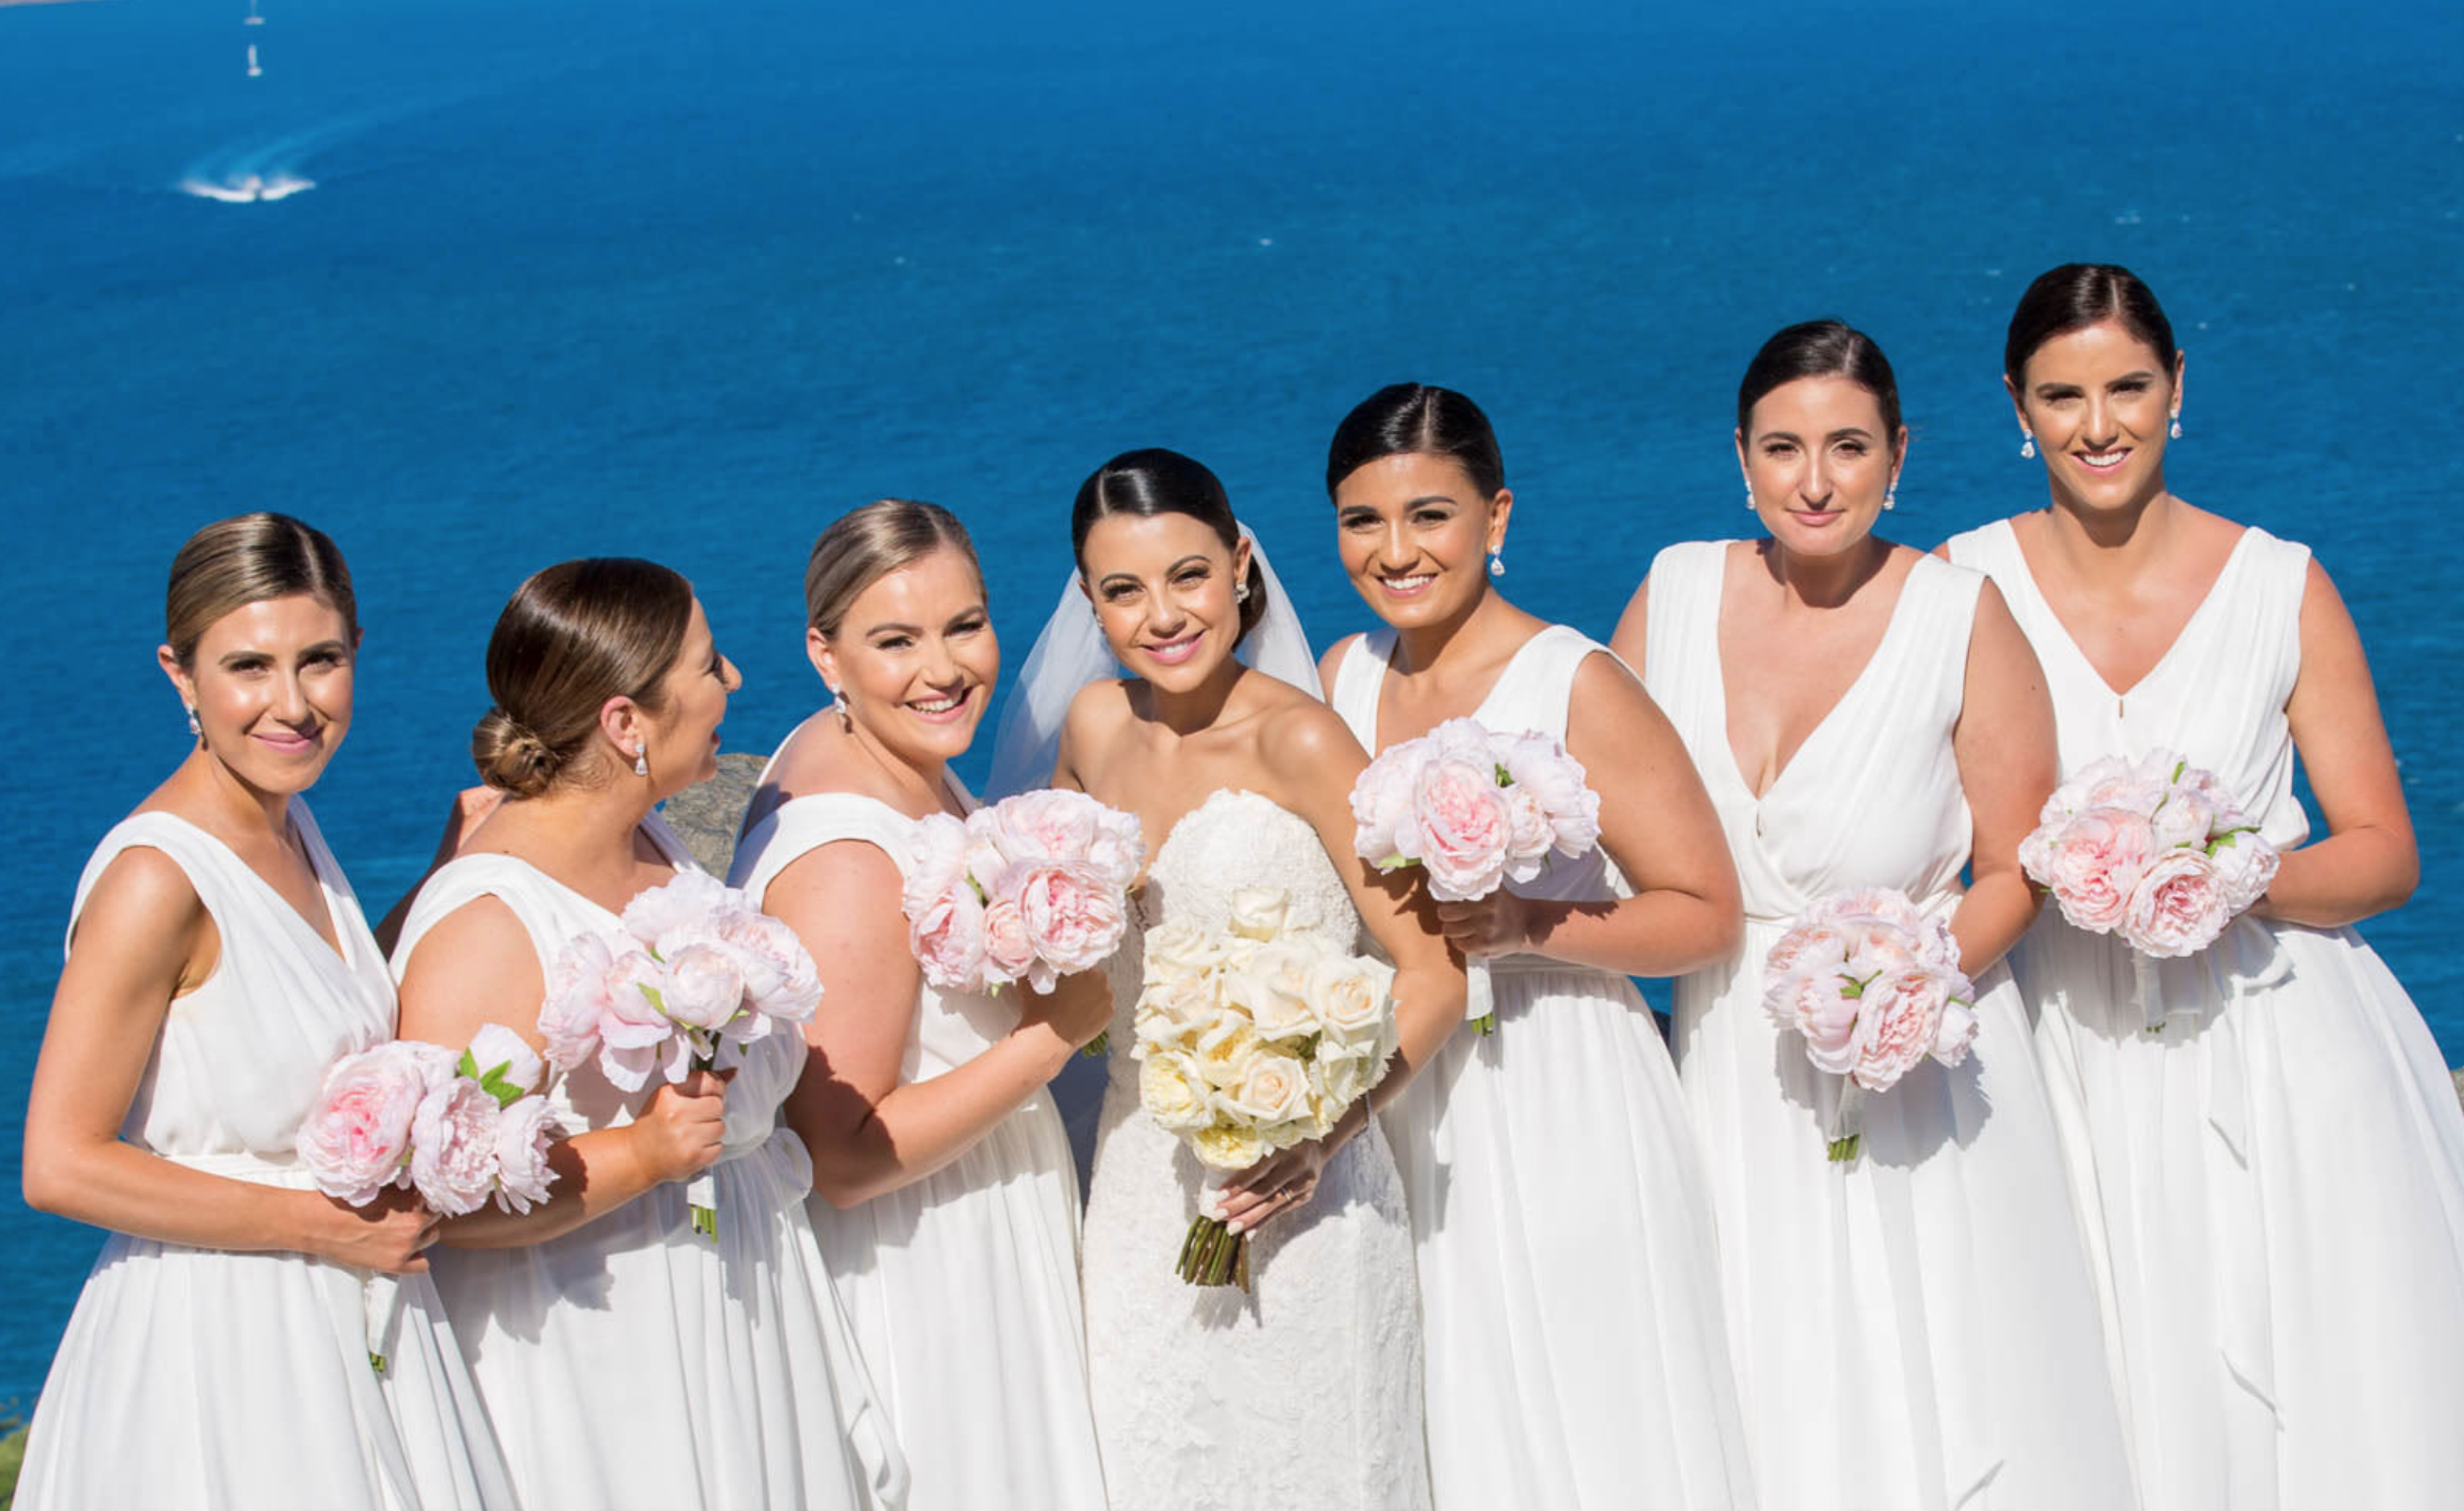 https://www.hamiltonislandweddings.com/wp-content/uploads/2019/02/Screen-Shot-2019-02-21-at-2.37.30-pm.png